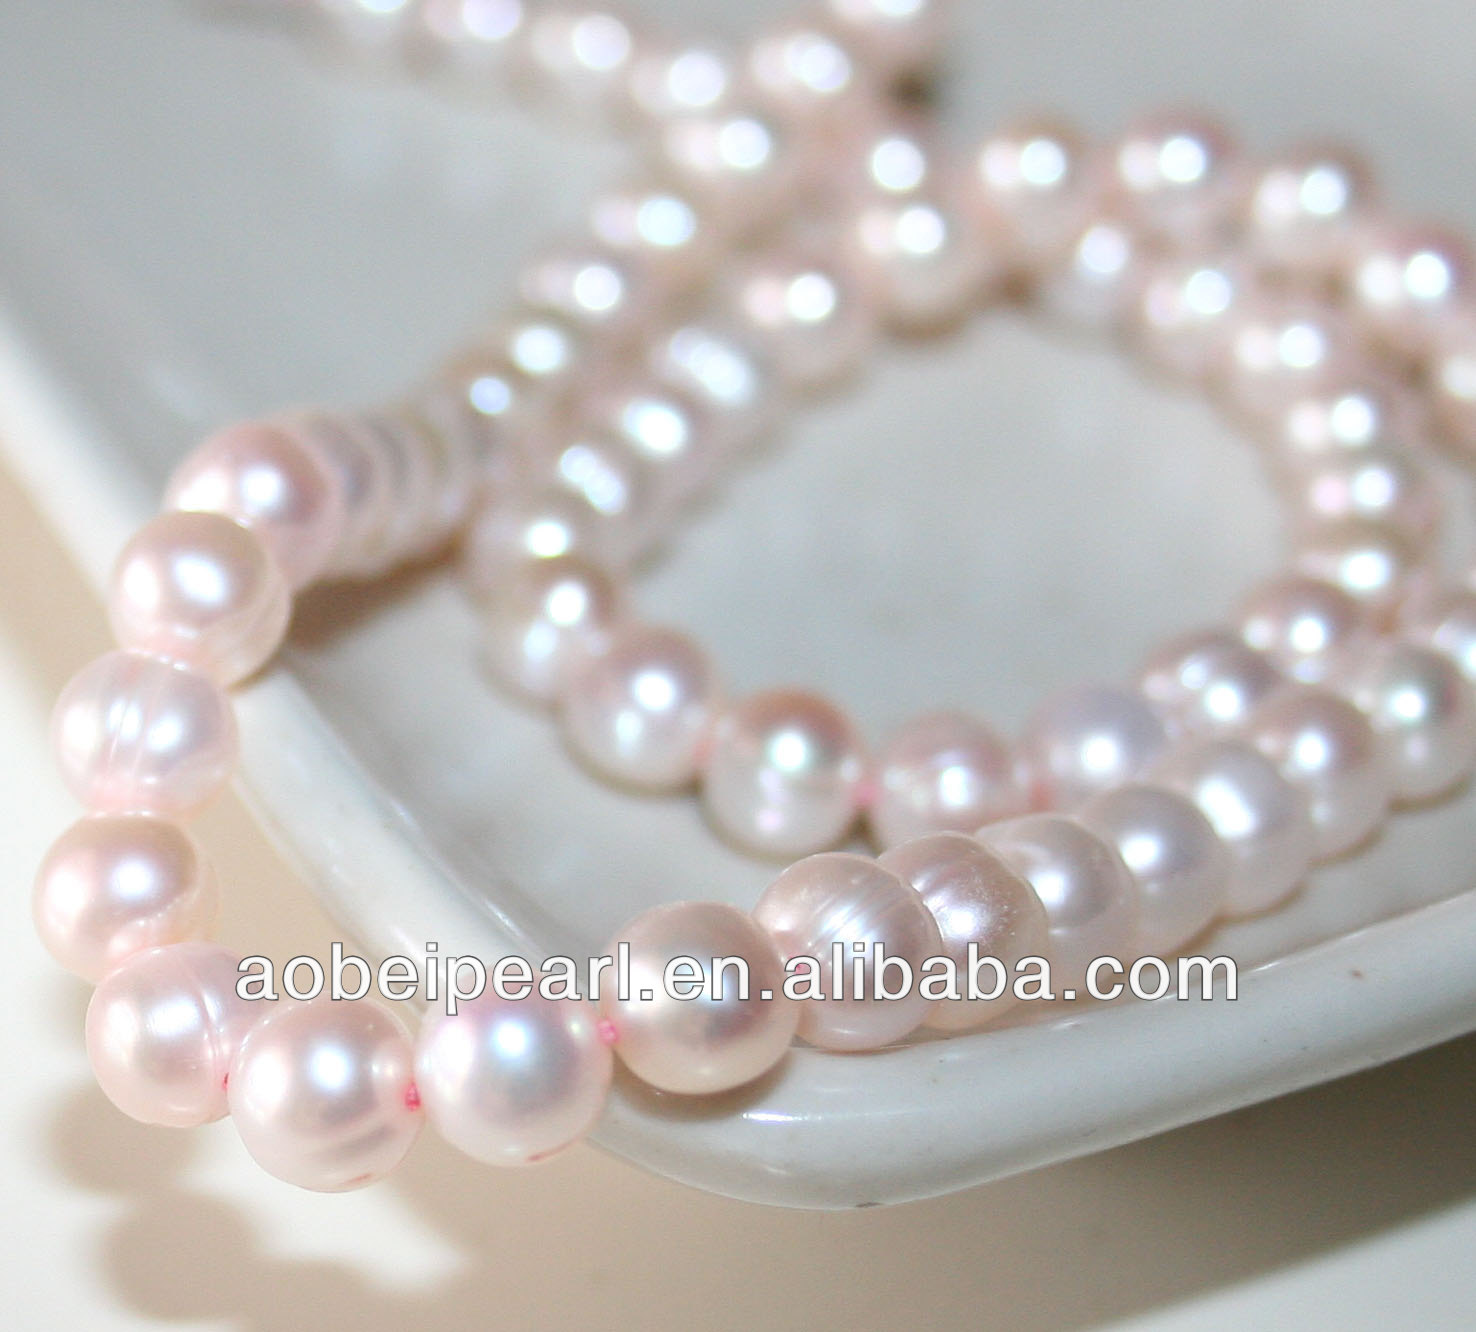 6-7MM Pink Potato Shaped Fresh Water Pearl Strands